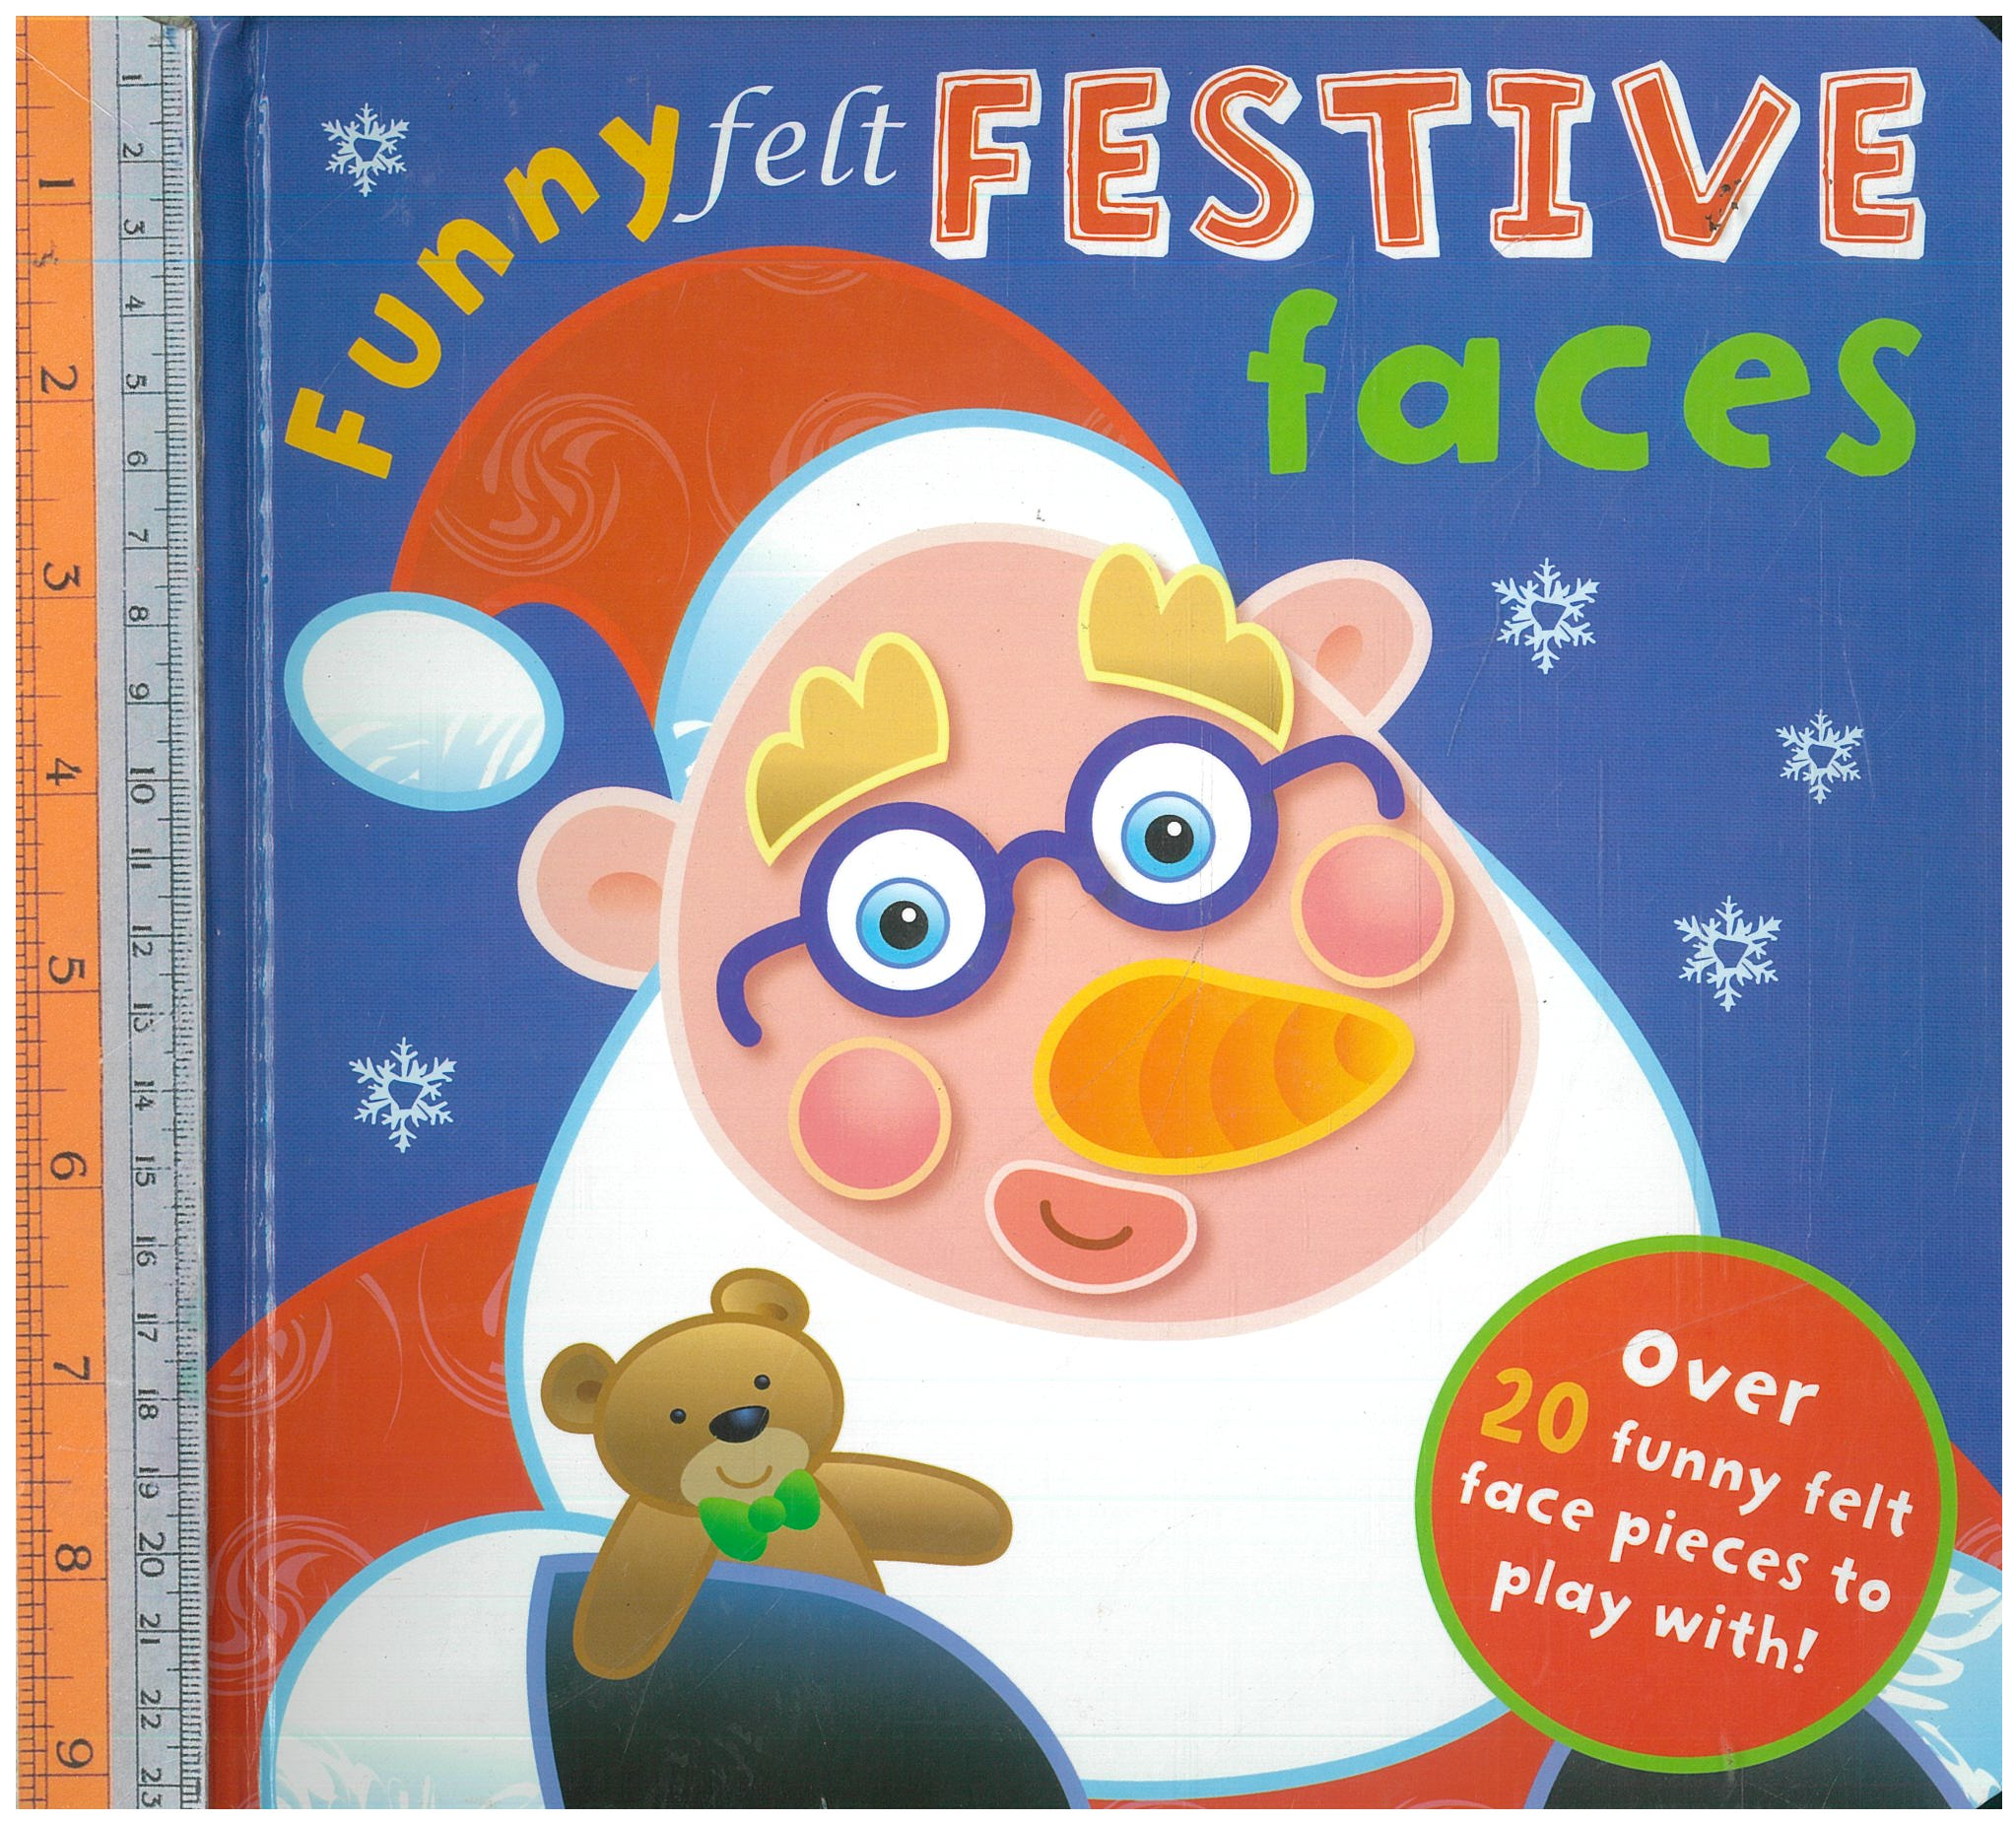 Funny felt festive faces